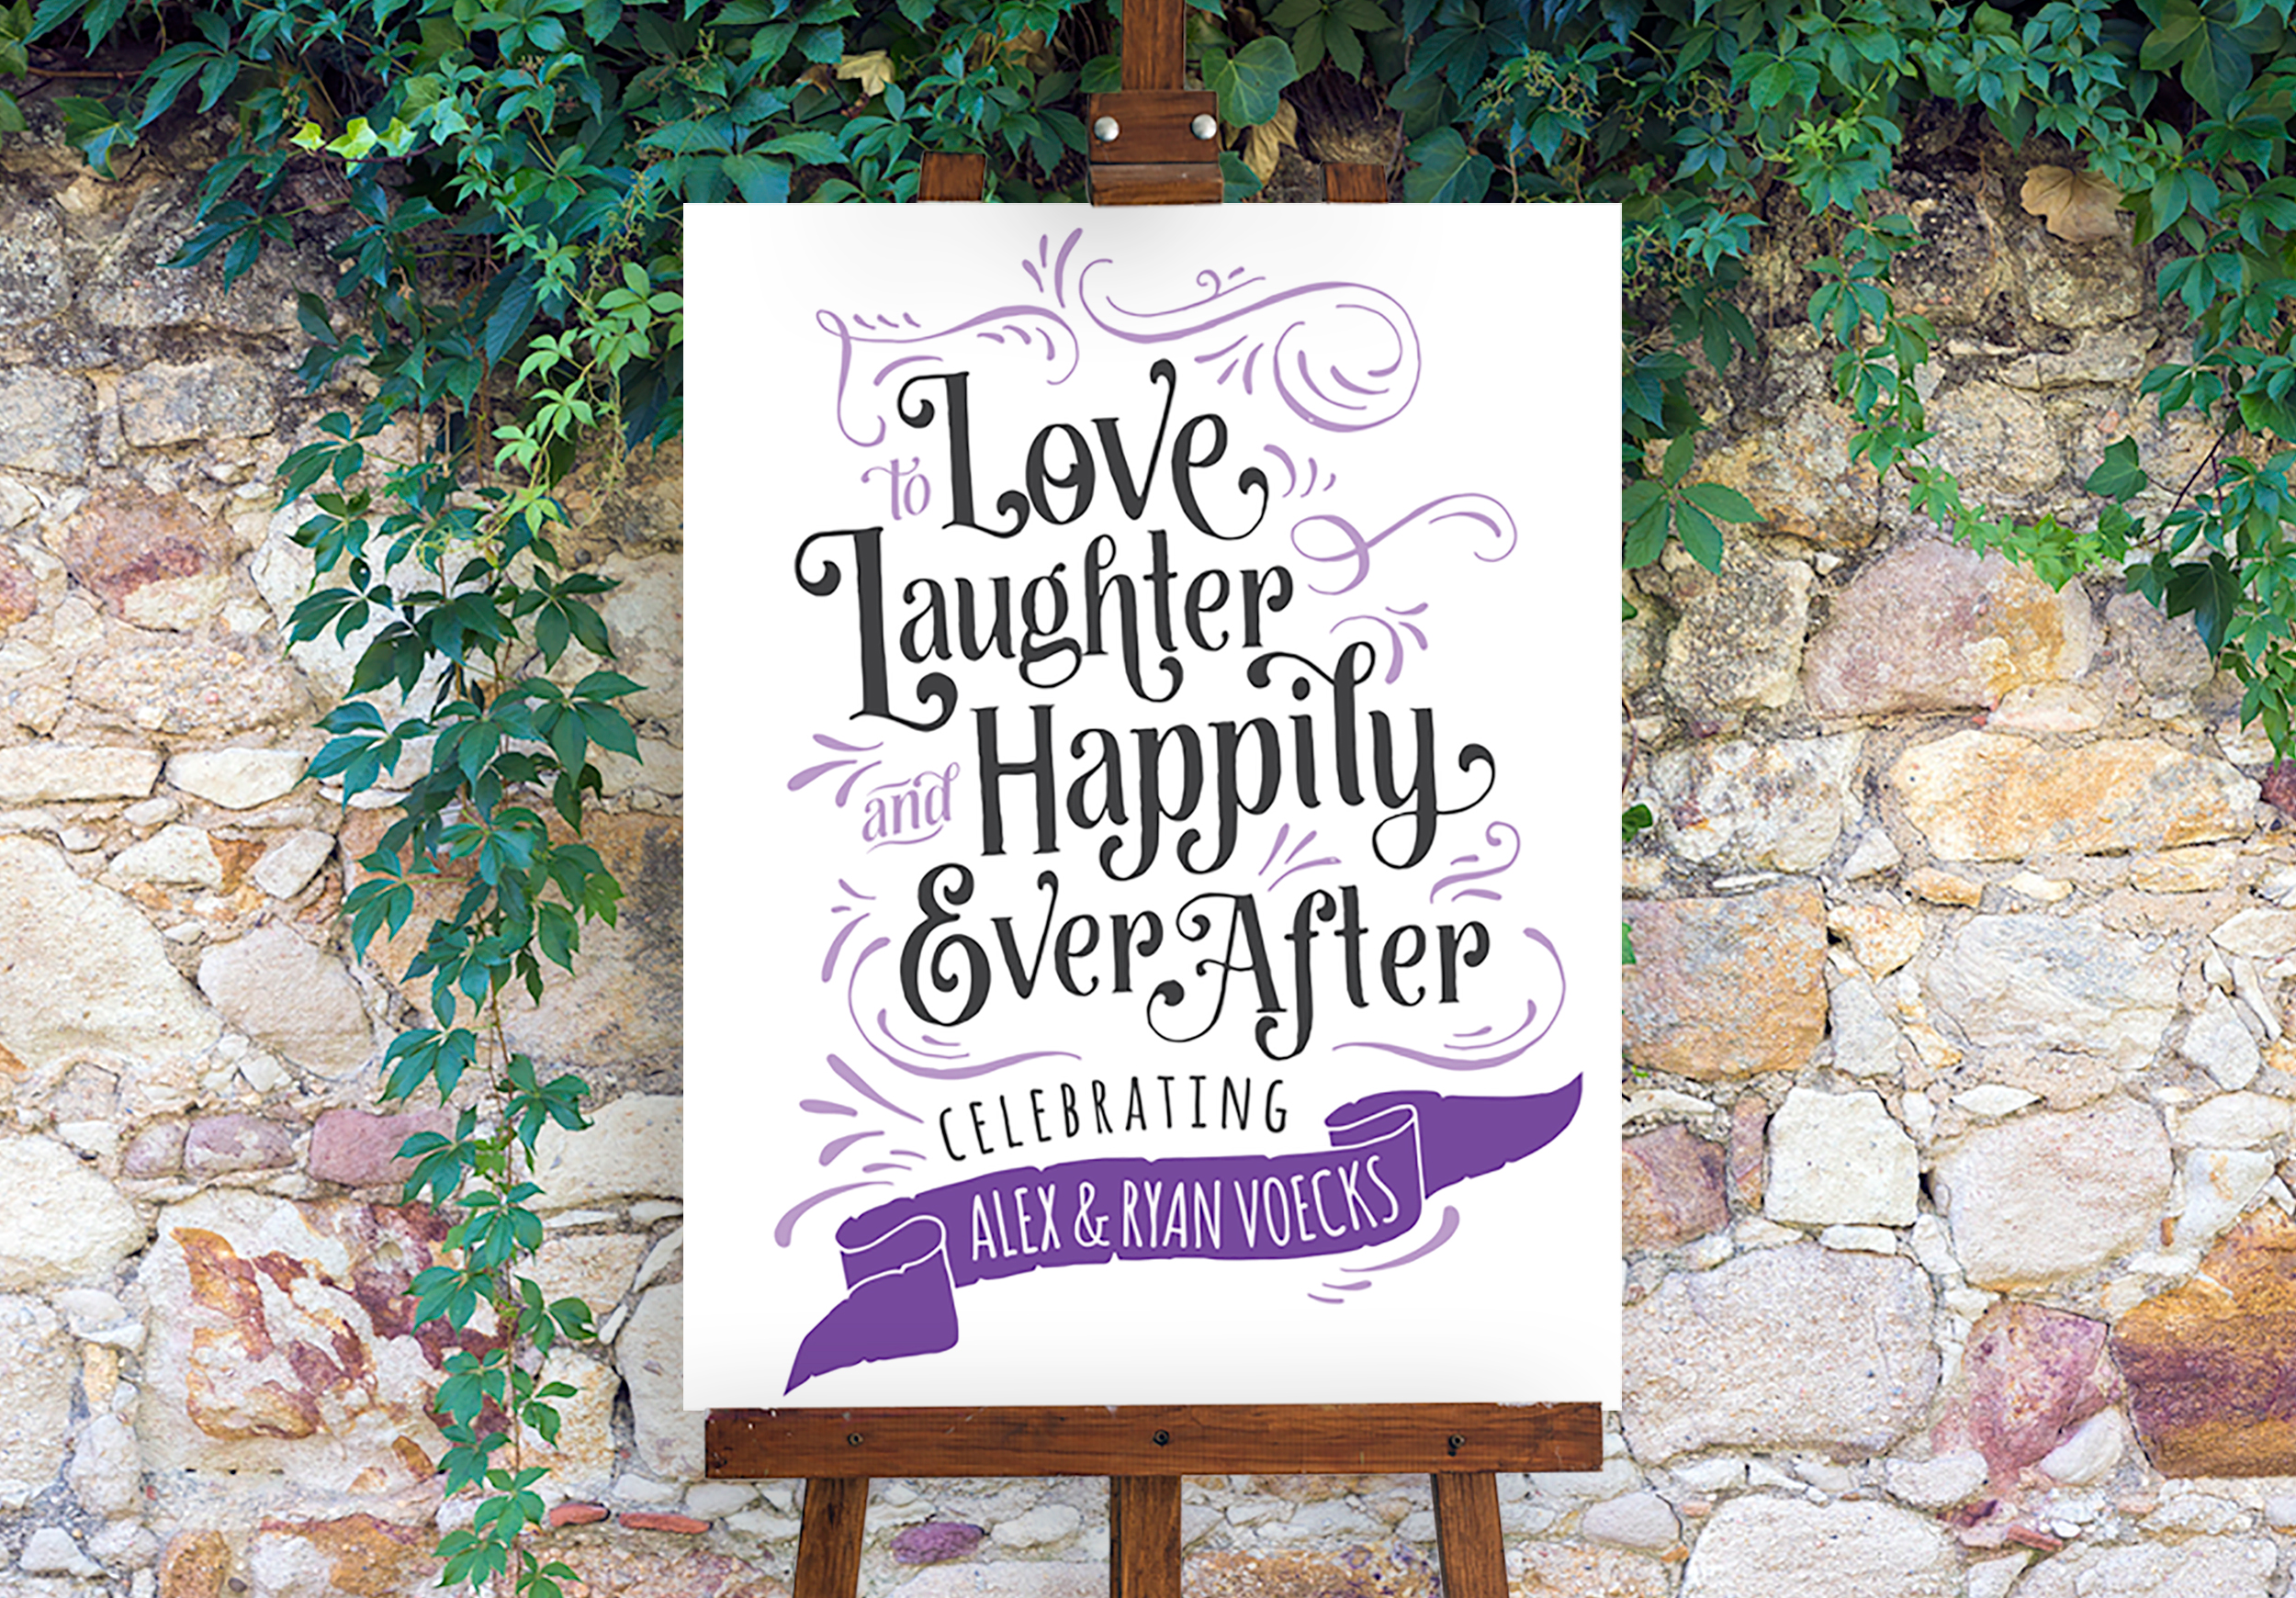 Happily ever after party sign printed in lilac and black ink.